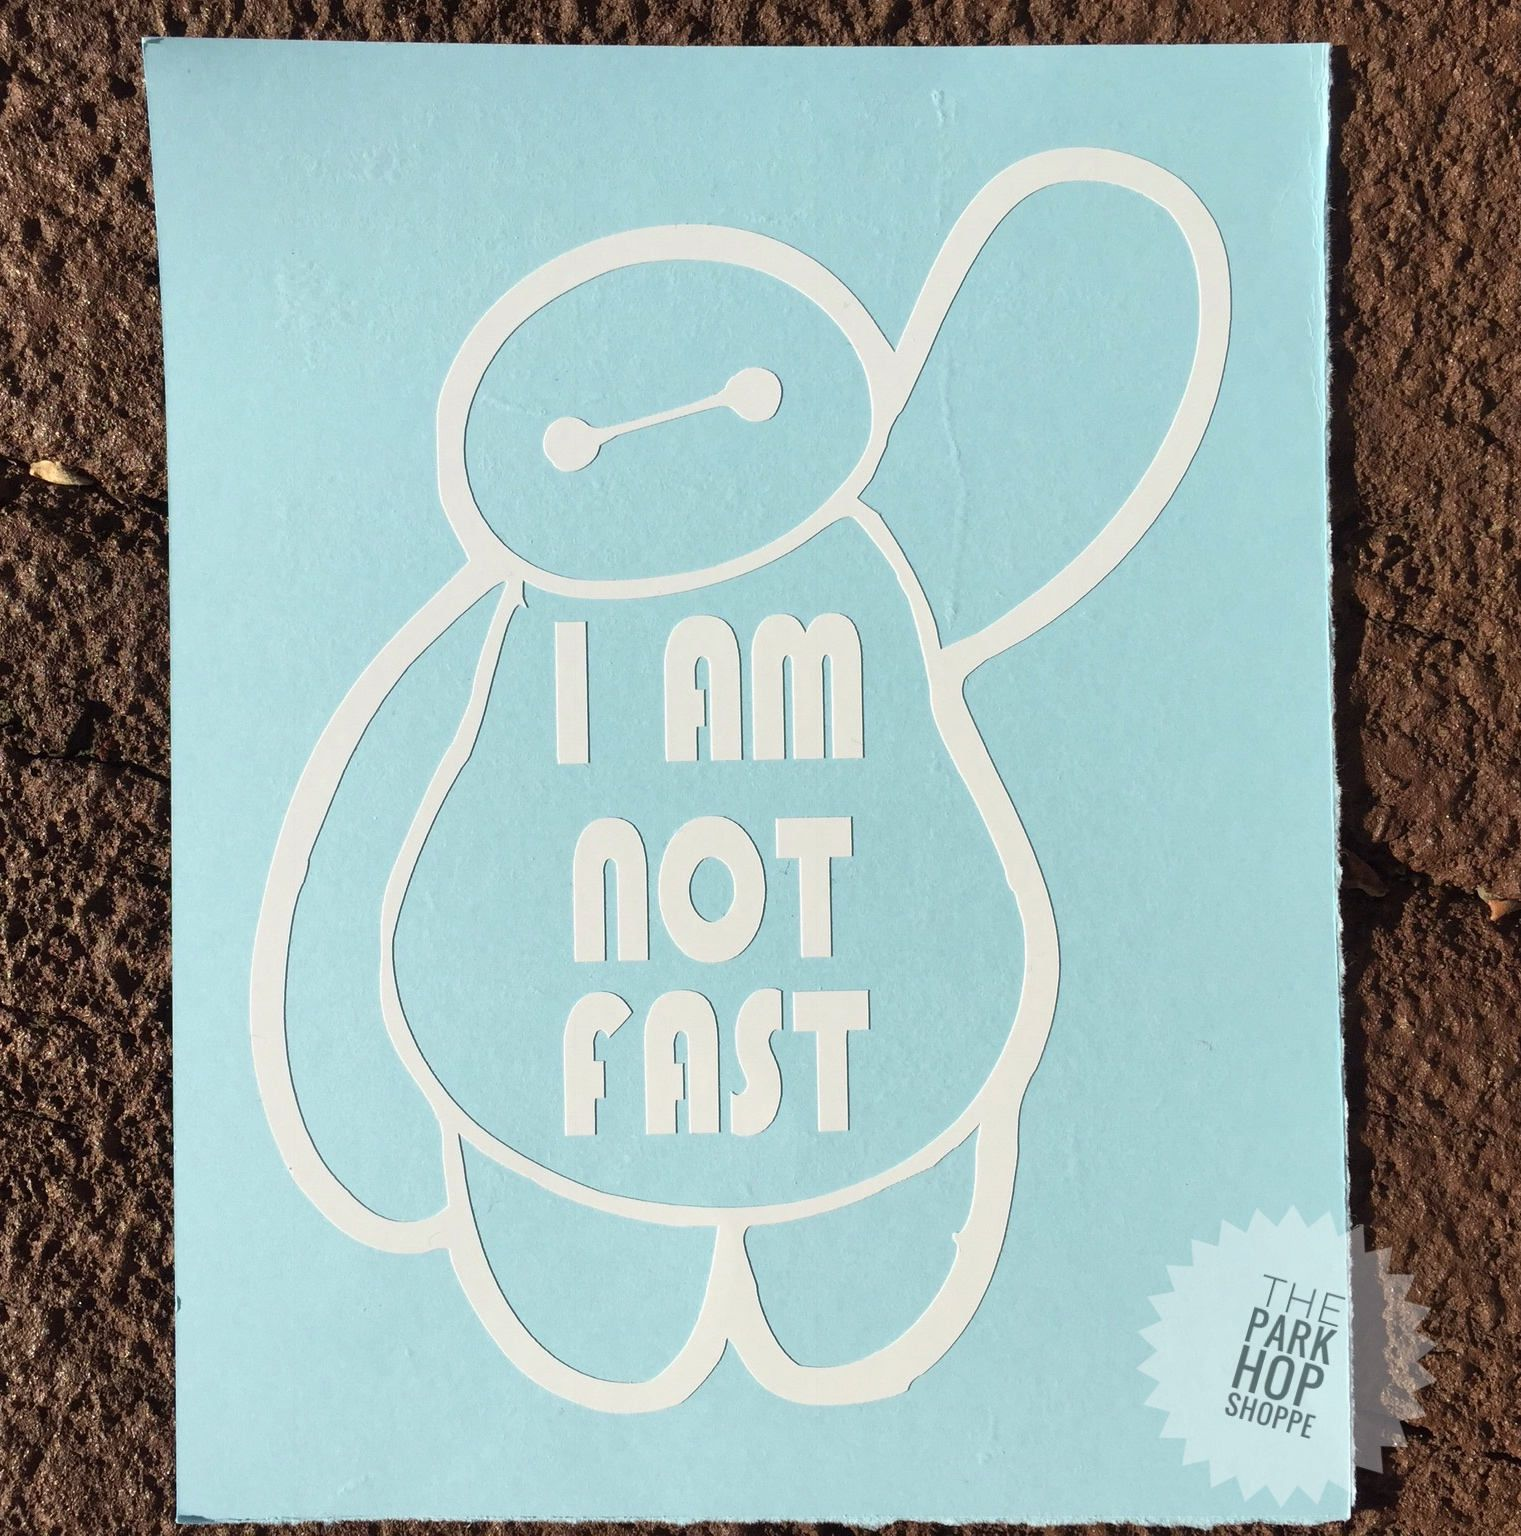 Pin By Jesslyn Montanez On Cricut Silhouette Fun Pinterest Filesolar Cell Equivalent Circuitsvg Wikimedia Commons Big Hero 6 Vinyl Decal Baymax Disney I Am